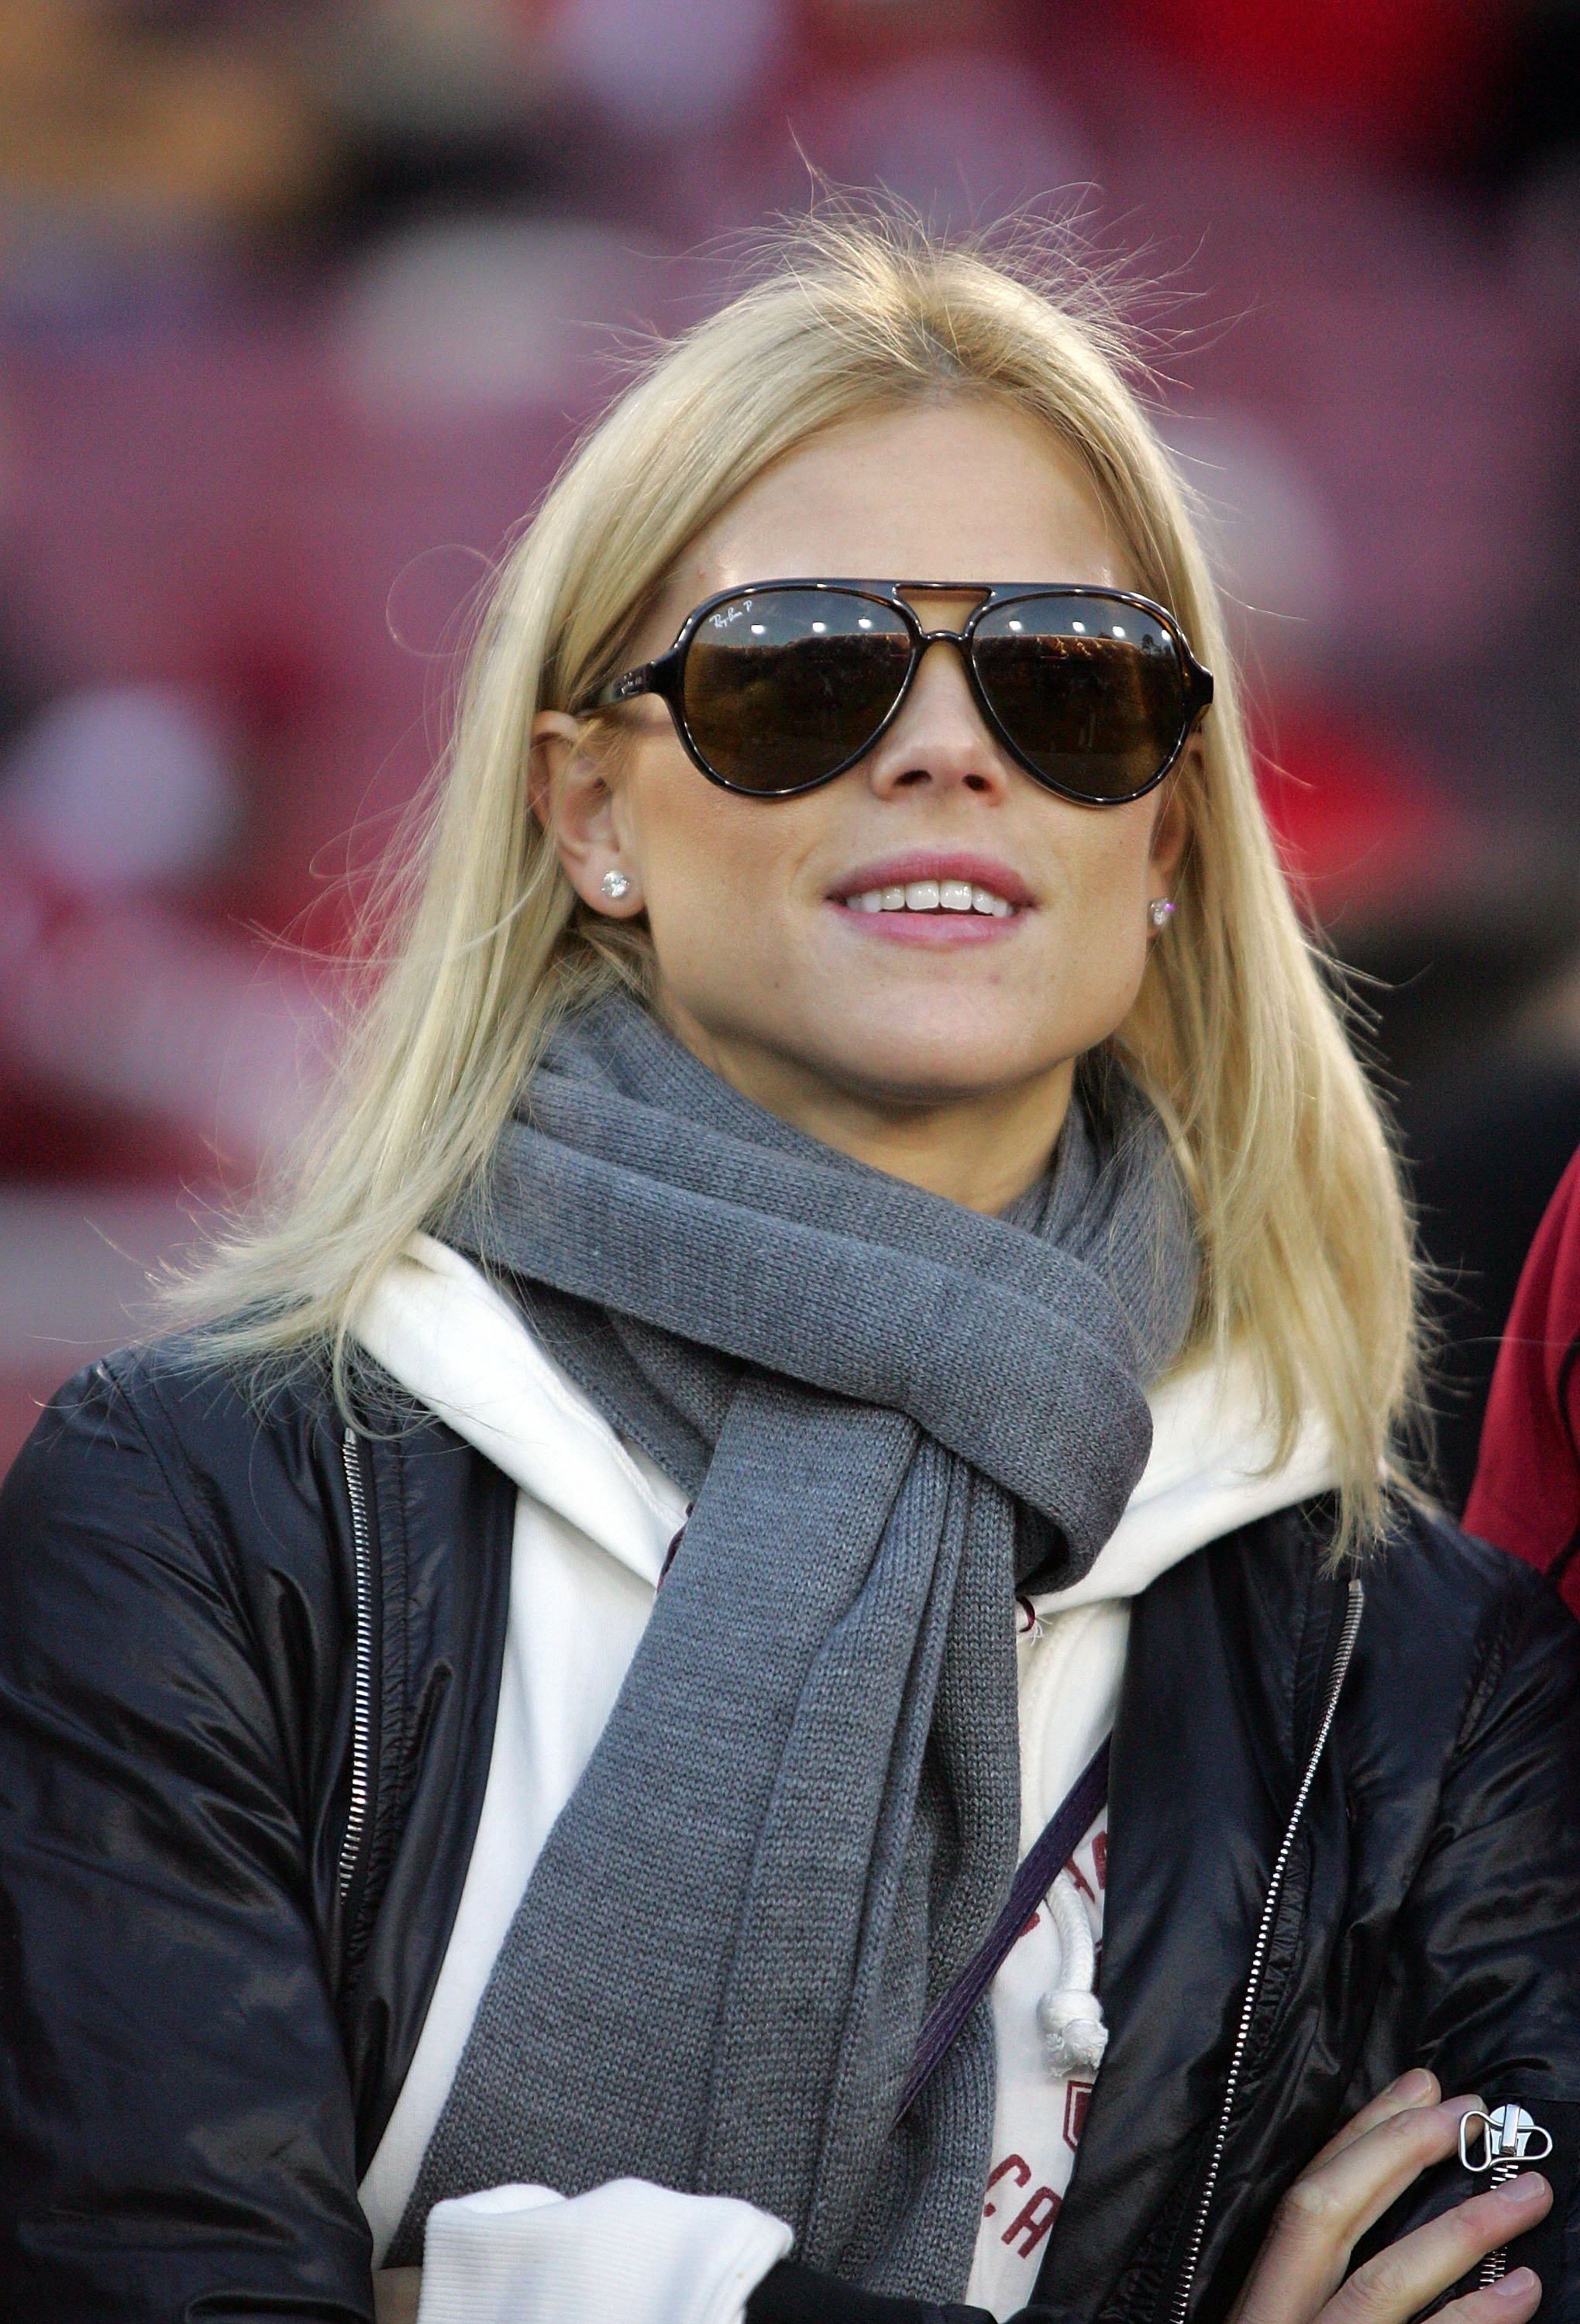 Tiger Woods' ex-wife, Elin Nordegren, on November 21, 2009 in Palo Alto, California | Photo: Getty Images